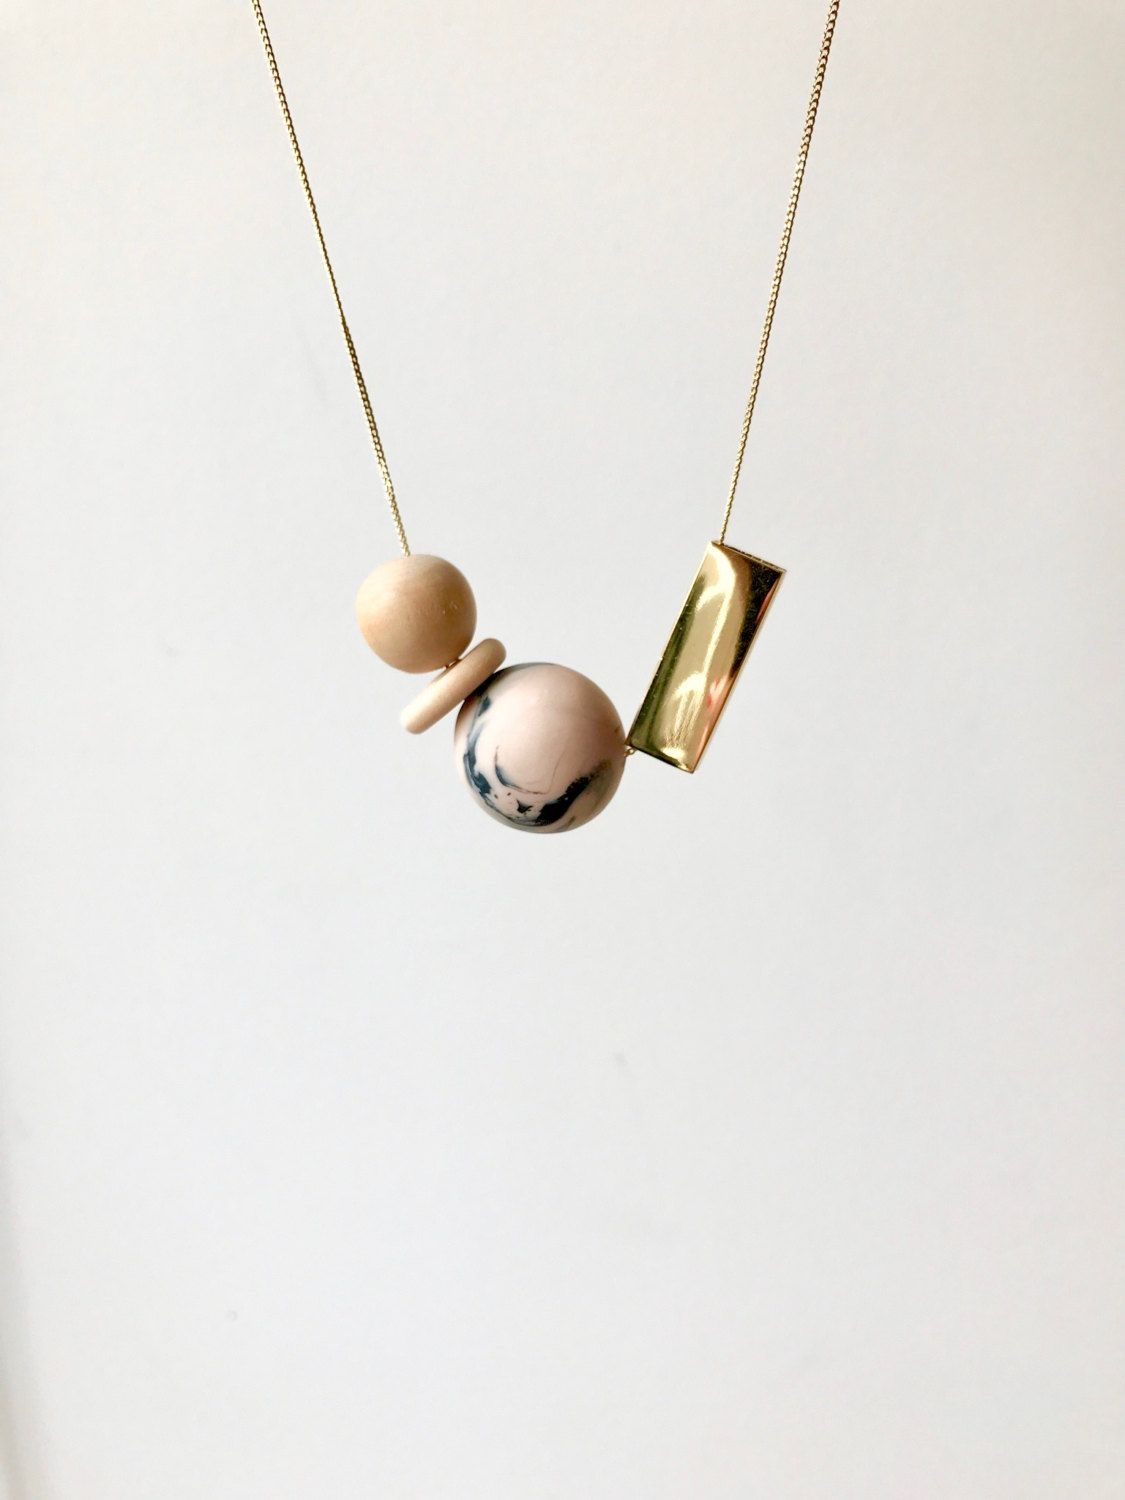 Blush minimalism | statement necklace from marbled black and peach polymer clay, wood and a gold bar by TheQuietObsession on Etsy